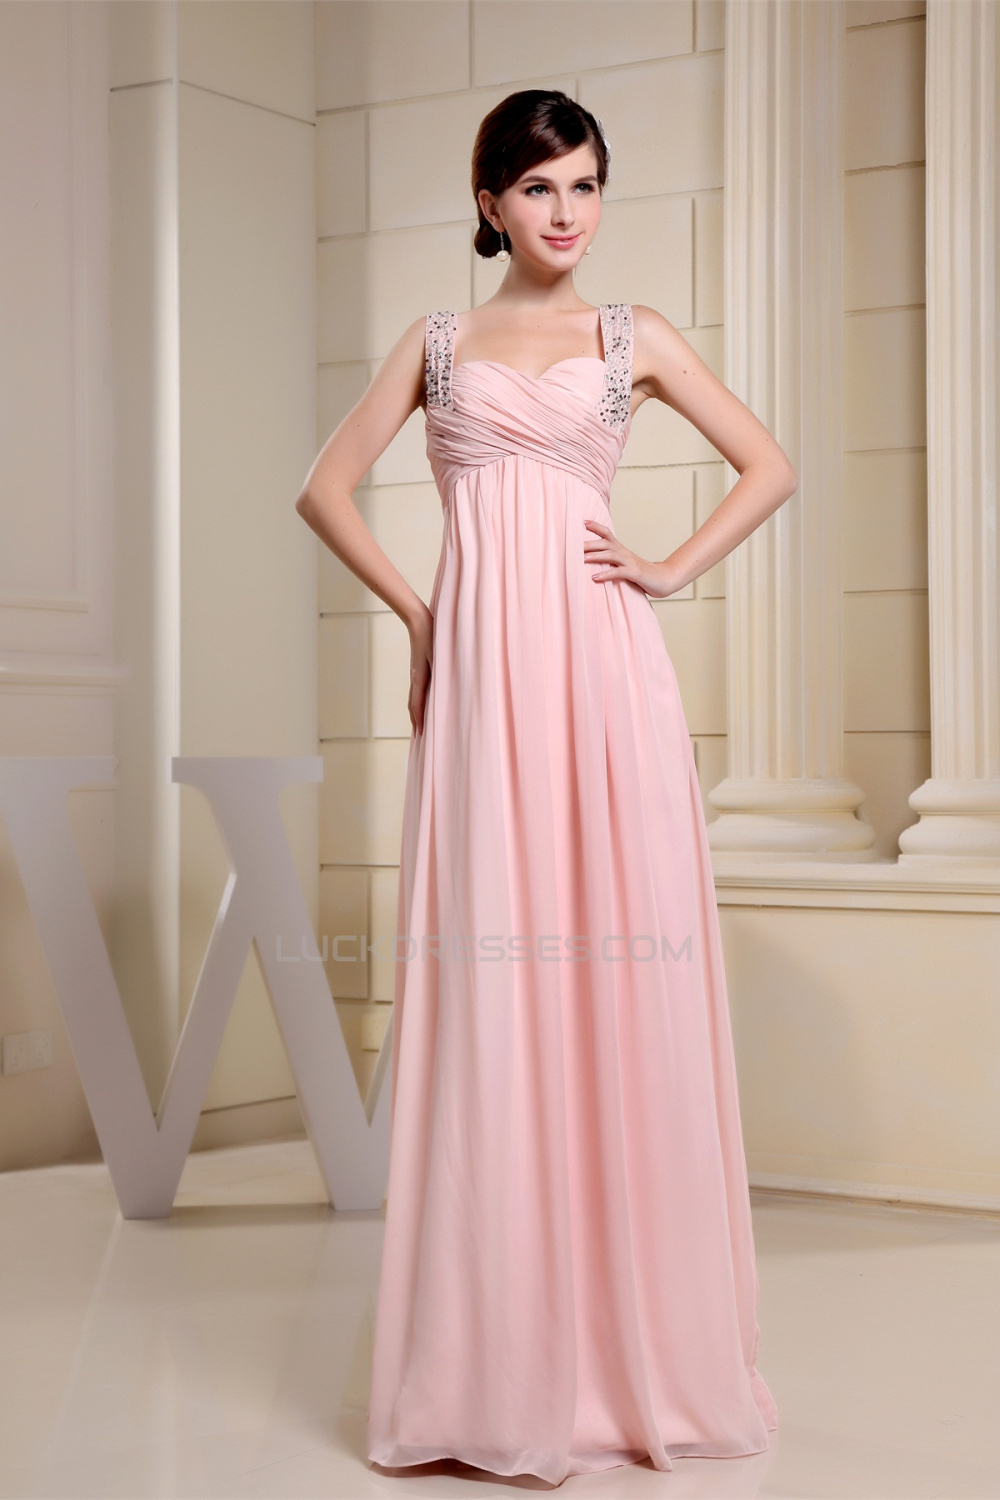 bffa2984d636 Empire Sleeveless Long Pink Chiffon Floor-Length Prom Evening Maternity  Formal Evening Dresses 02020264